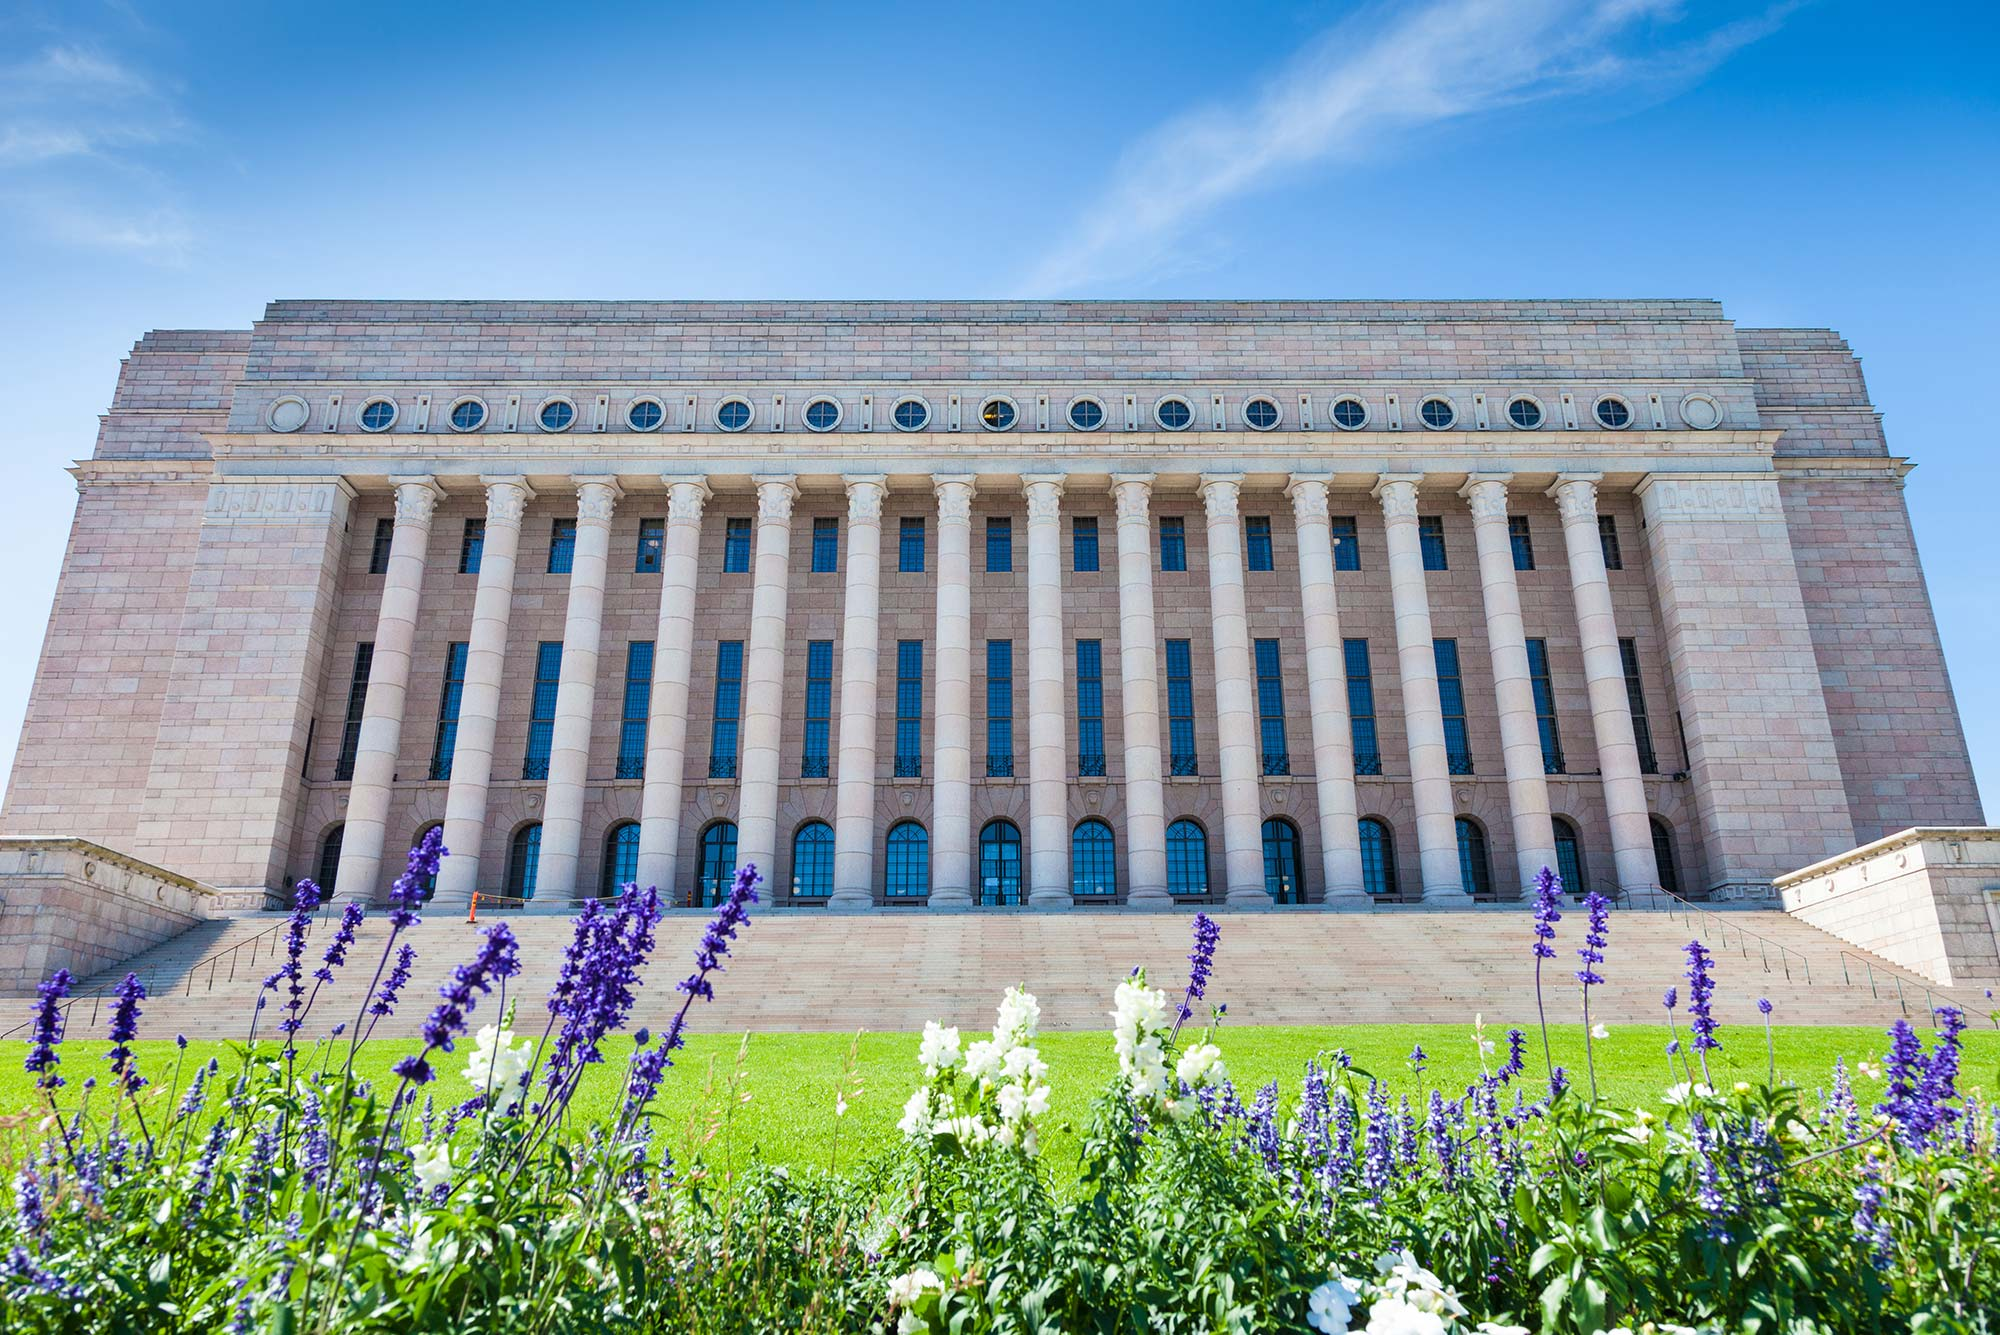 The Parliament House in Helsinki, Finland.